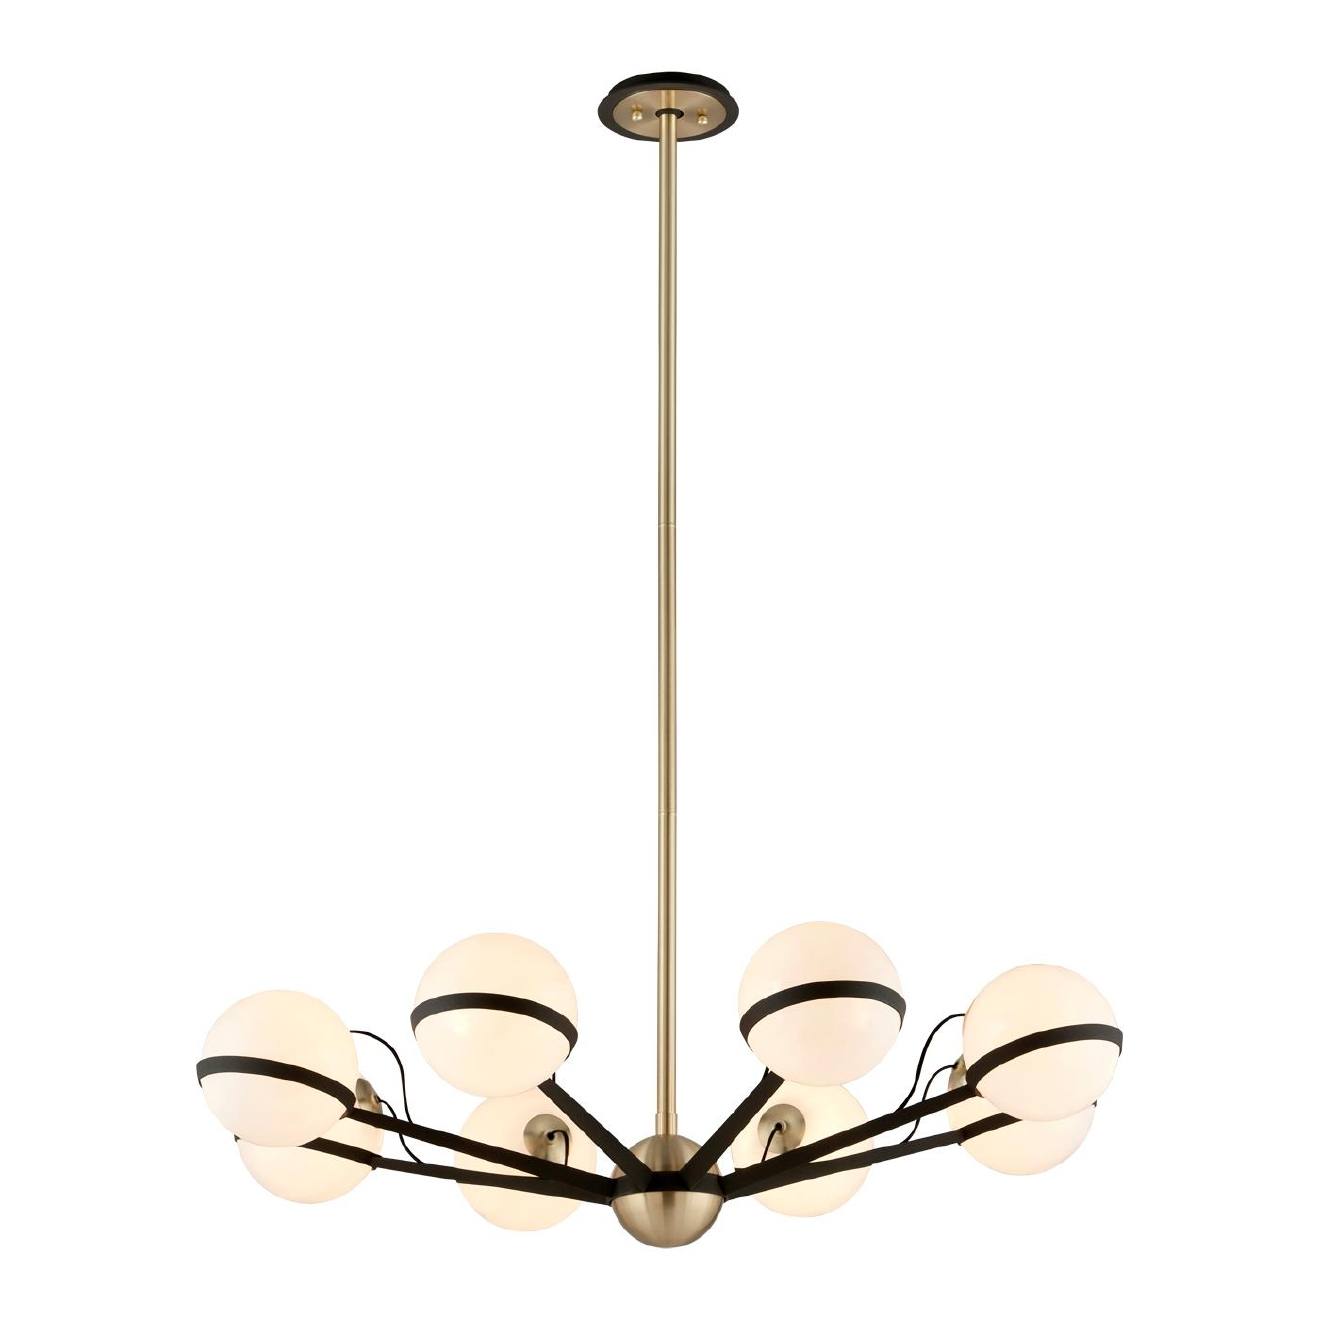 Troy Lighting F5304 Ace 8-Light Chandelier ($796) Gloss opal globes radiate from a central satin brushed brass orb, held in place by hand-worked iron arms in dark, textured bronze. Each arm is a piece of folded flat bar material, going from narrow to wide, with fabric cord running on the inside. The cord intentionally comes up and out of the globes to evoke a retro feel. (Image: ATGStores.com)